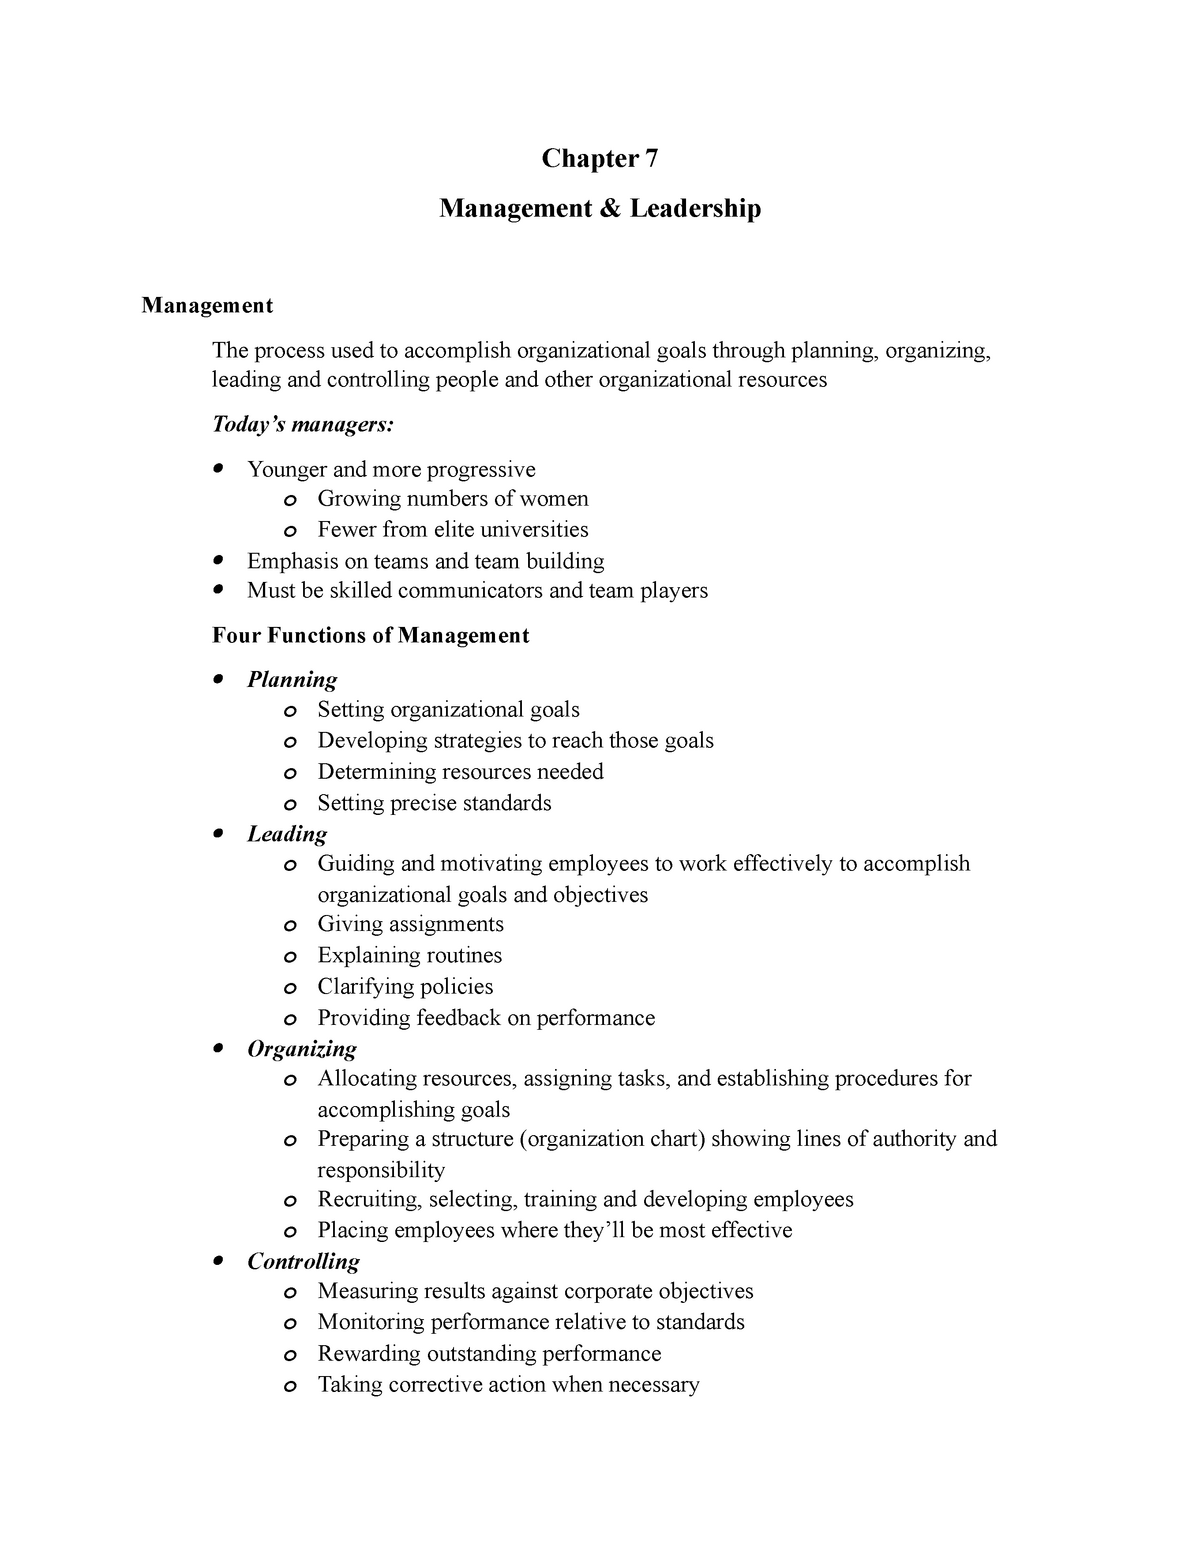 Chapter 7 Management and Leadership - BUSN 102: Foundations